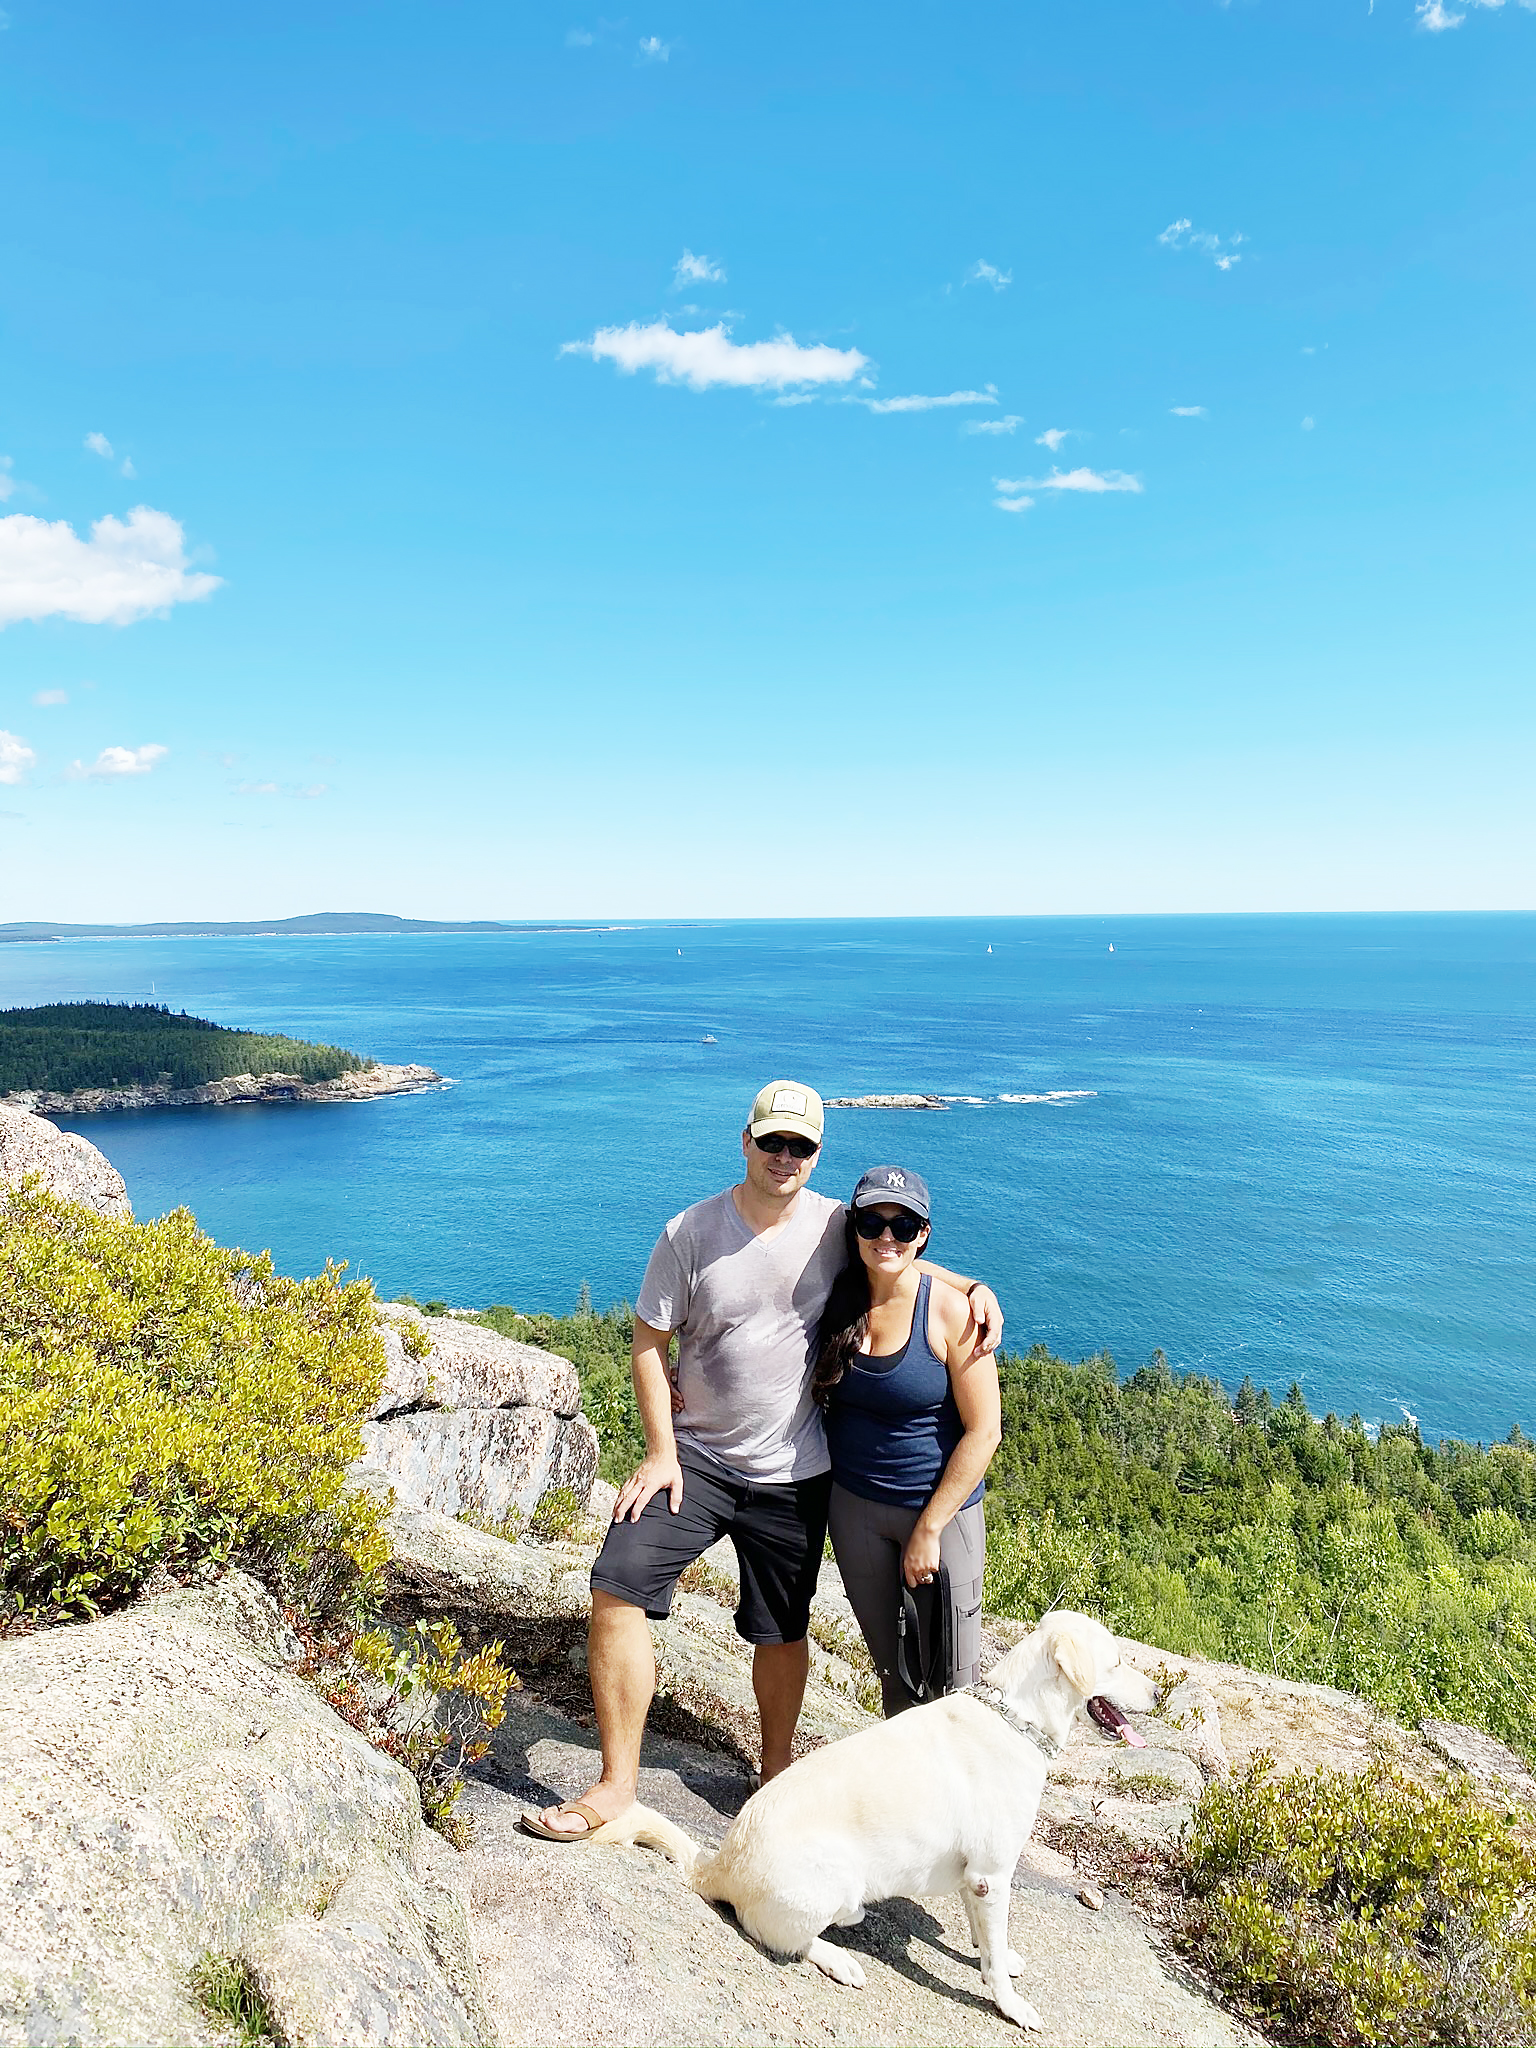 Hiking Acadia National Park what to wear and bring, hiking outfit.  Top of Cadillac Mountain || DarlingDarleen.com Top Lifestyle CT Blogger Darling Darleen #acadia #acadianationalpark